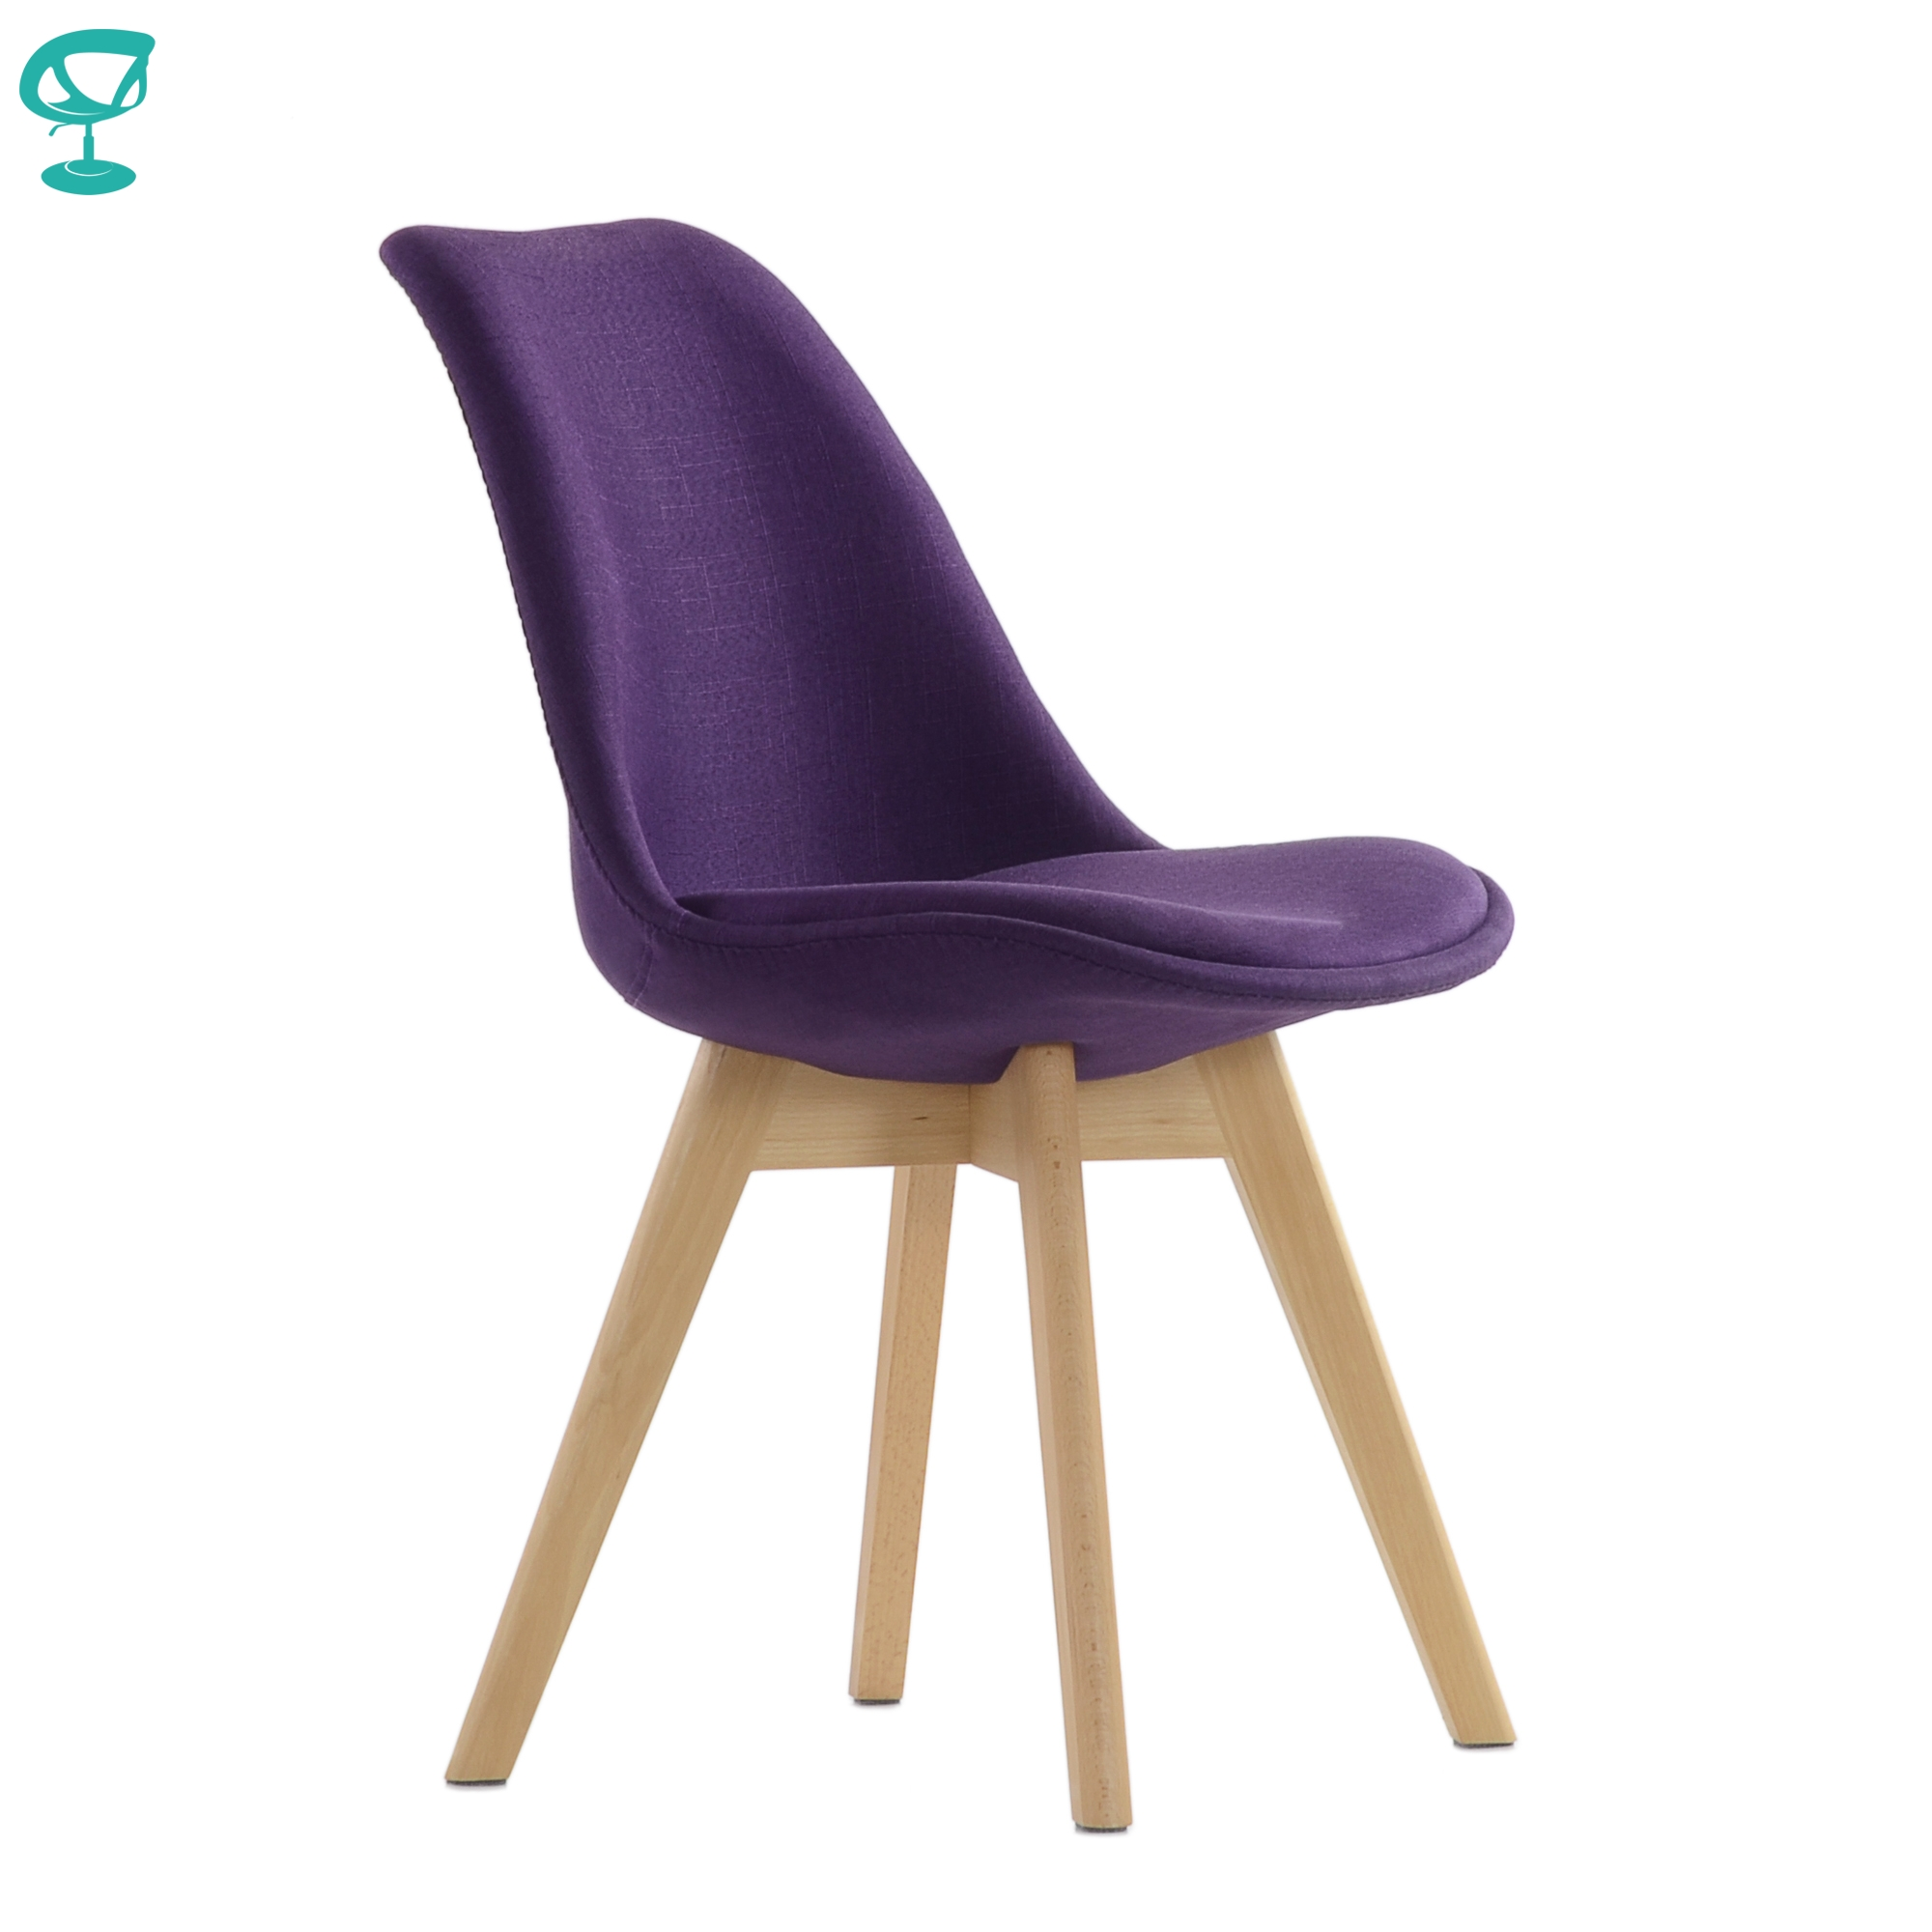 95737 Barneo N-22 Kitchen Chair On Wooden Base Seat Fabric Chair For Living Room Chair Dining Chair Furniture For Kitchen